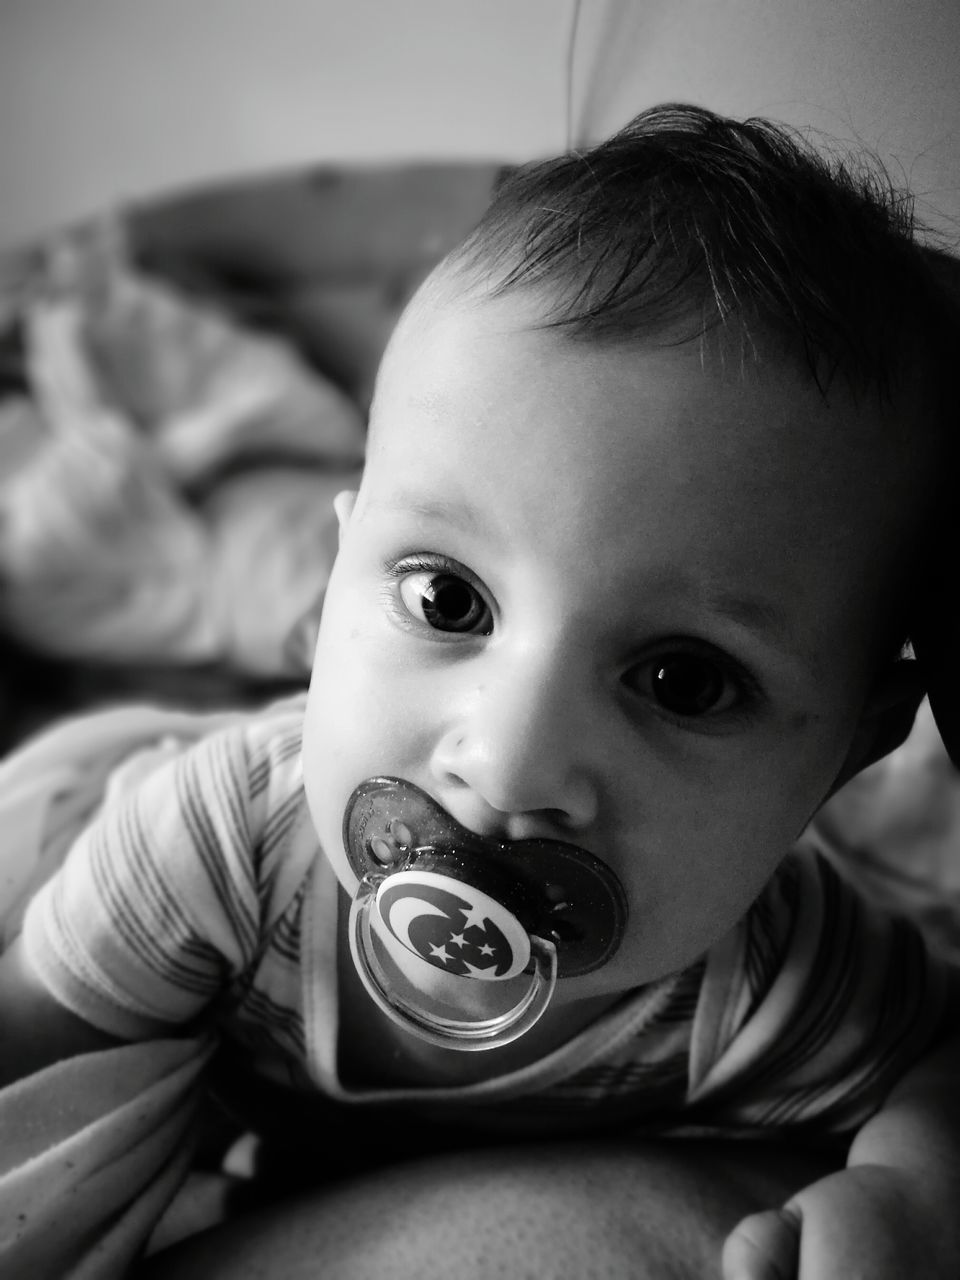 baby, innocence, childhood, babyhood, indoors, cute, one person, real people, pacifier, looking at camera, babies only, home interior, bed, portrait, close-up, day, people